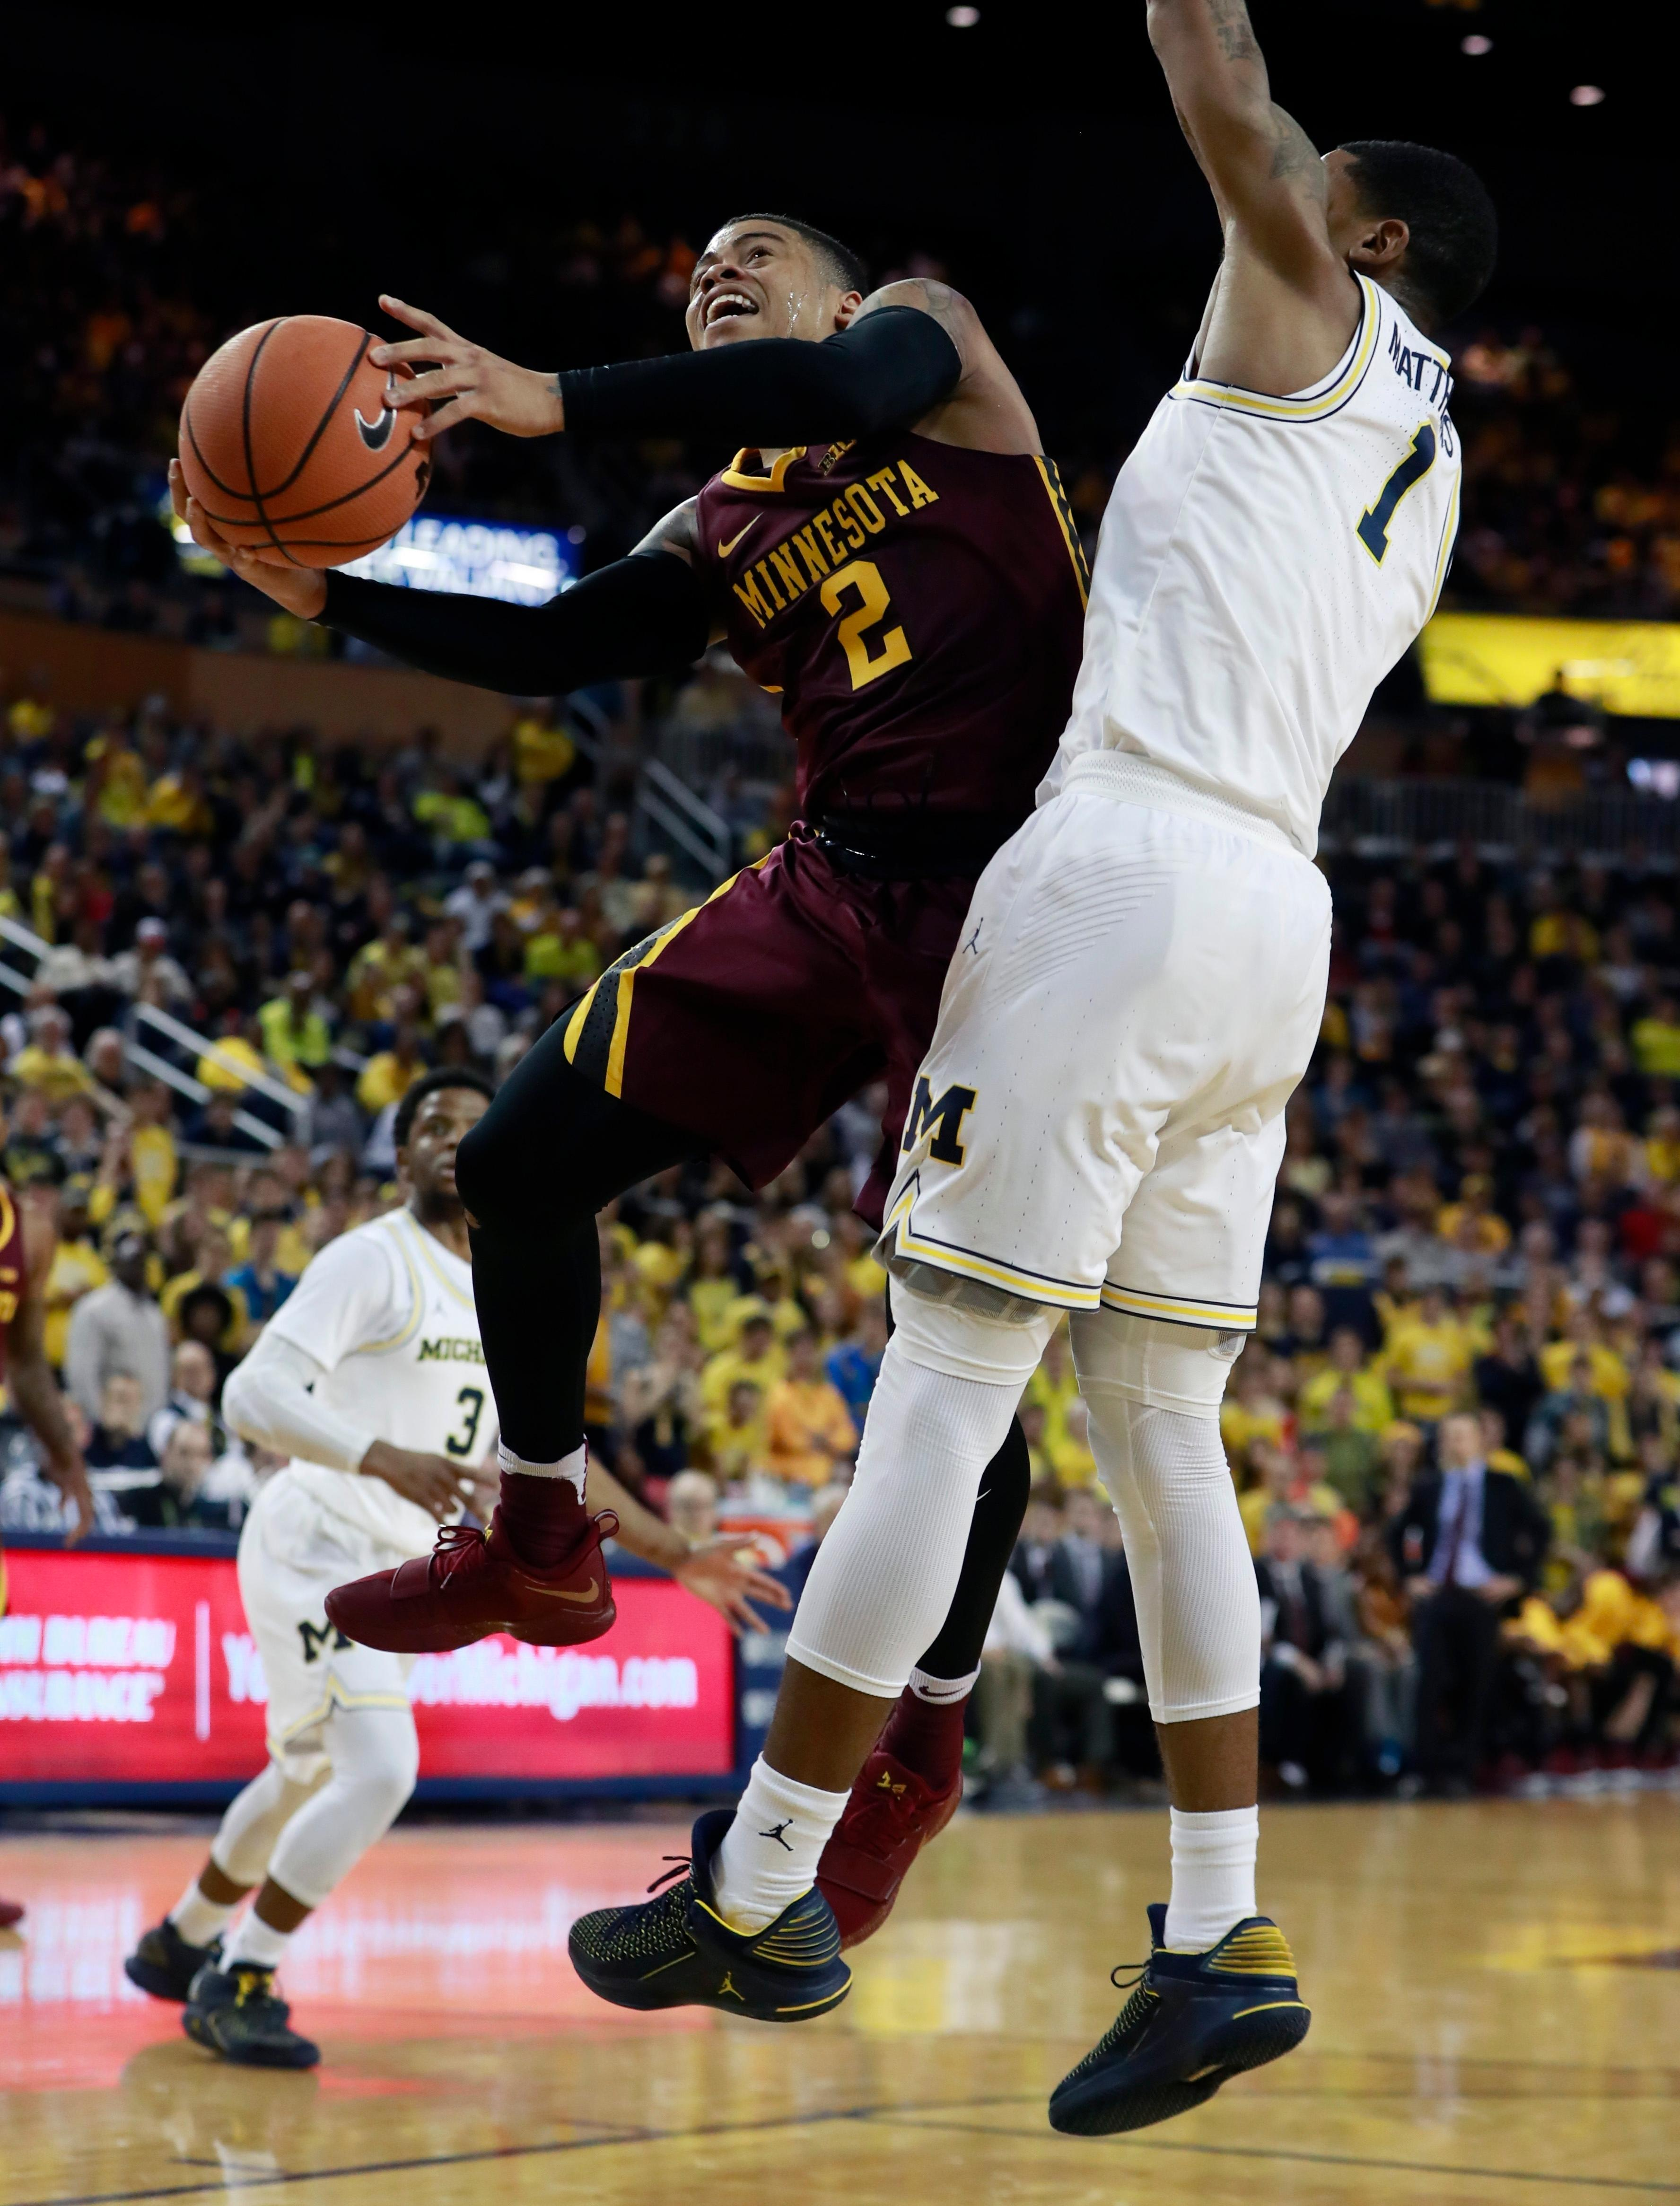 Minnesota guard Nate Mason (2) makes a layup as Michigan guard Charles Matthews (1) defends during the first half of an NCAA college basketball game, Saturday, Feb. 3,2018, in Ann Arbor, Mich. (AP Photo/Carlos Osorio)